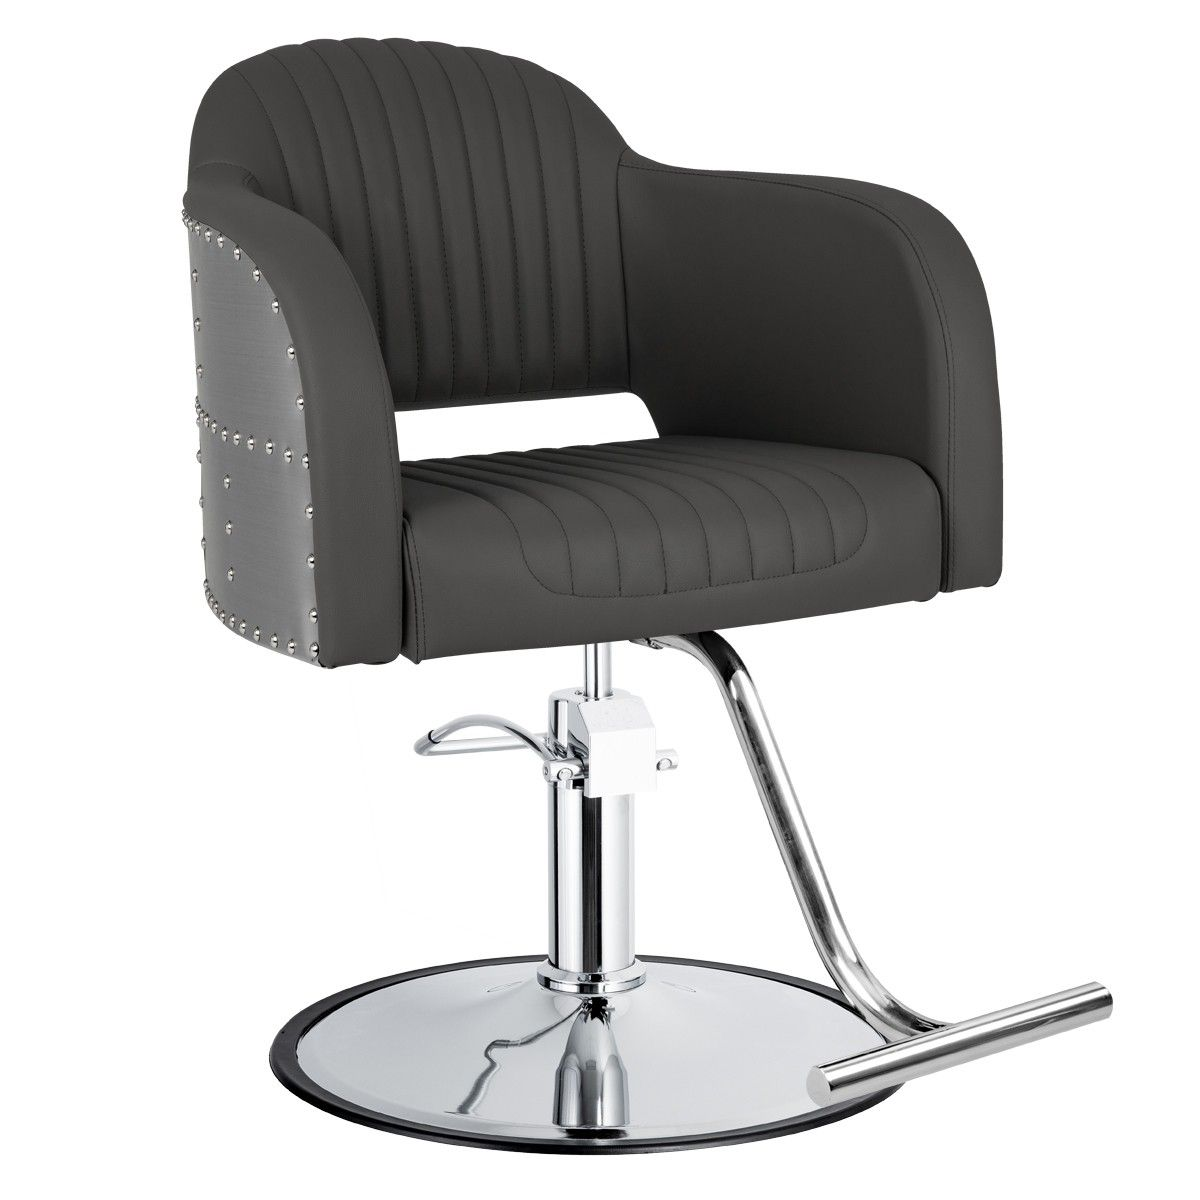 Marvelous Corsair Styling Chair In Gray Styling Chairs In 2019 Bralicious Painted Fabric Chair Ideas Braliciousco